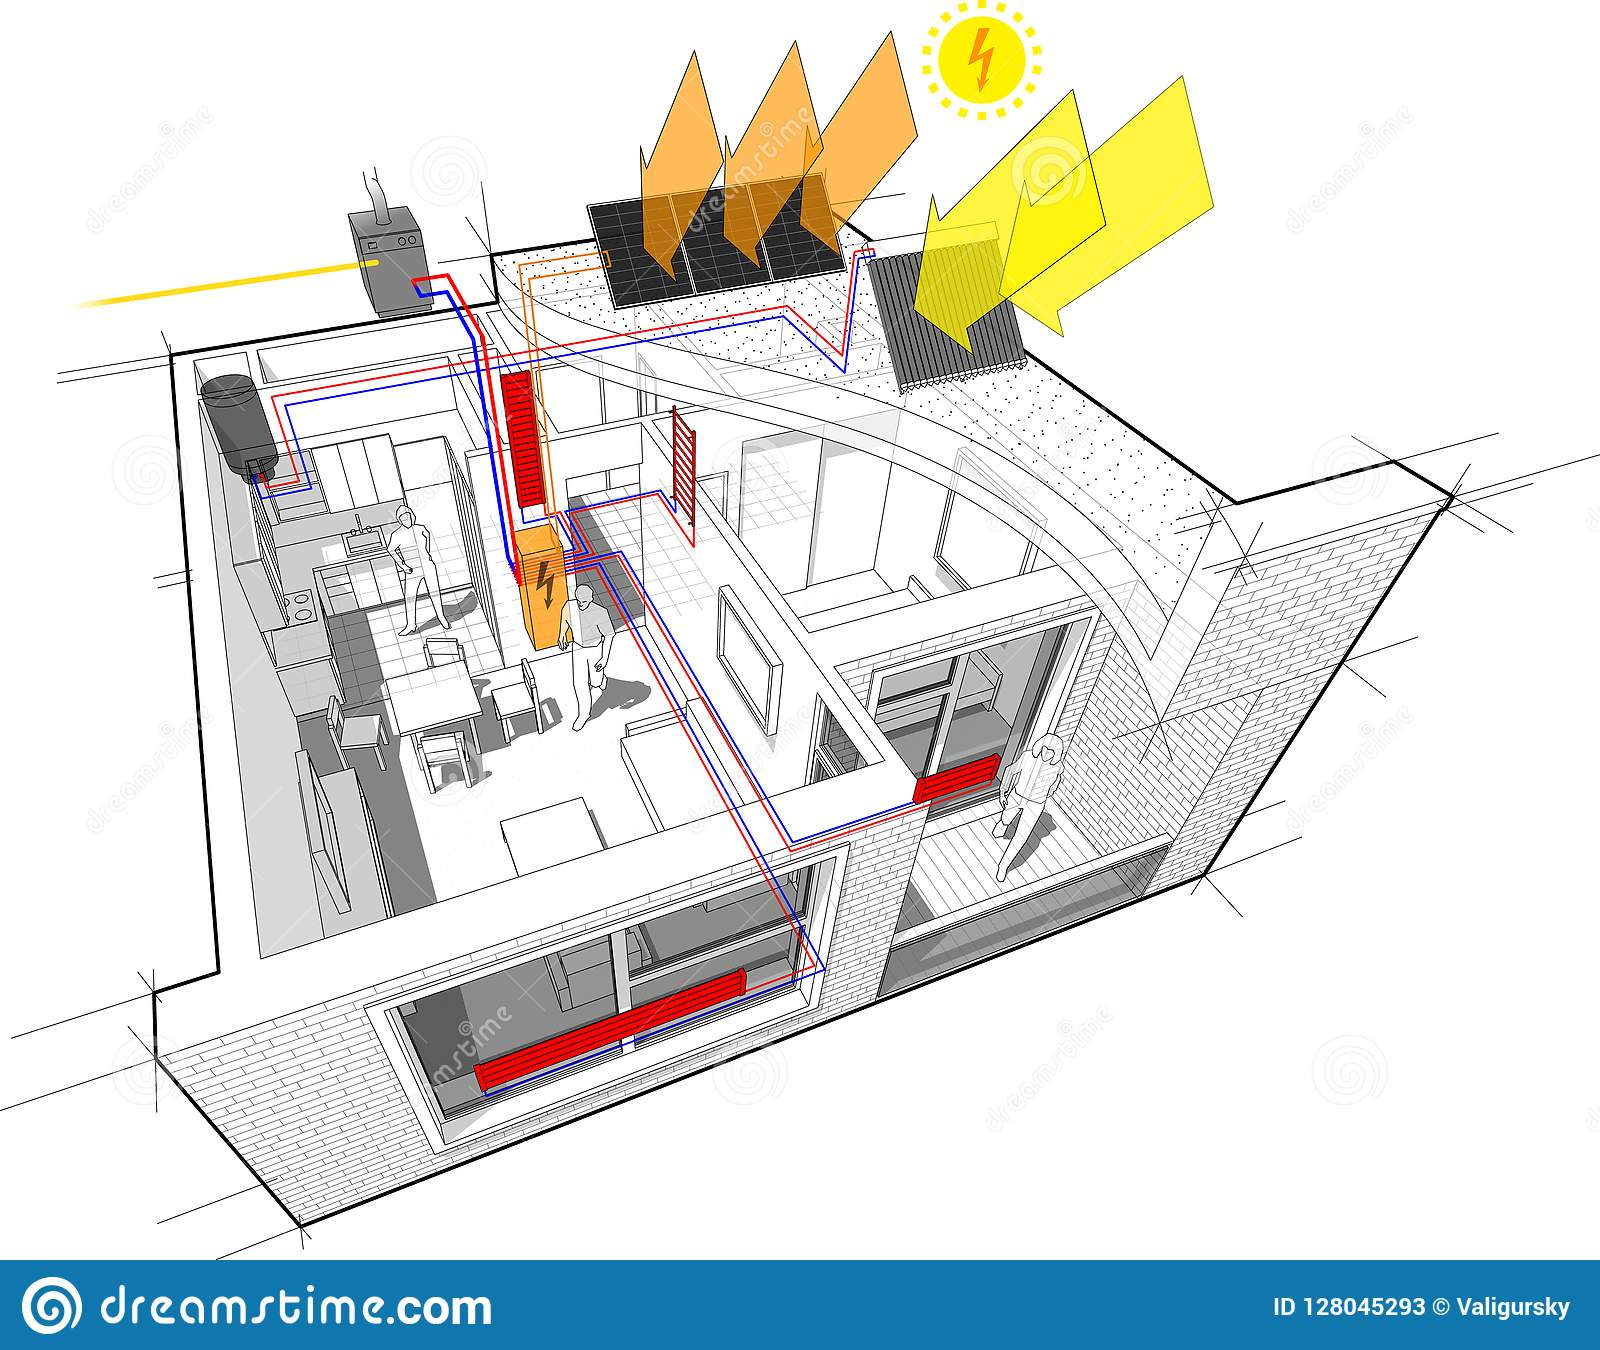 Home Radiator Diagram Trusted Schematics Mad Max Engine Apartment With Heating And Gas Water Boiler Heater